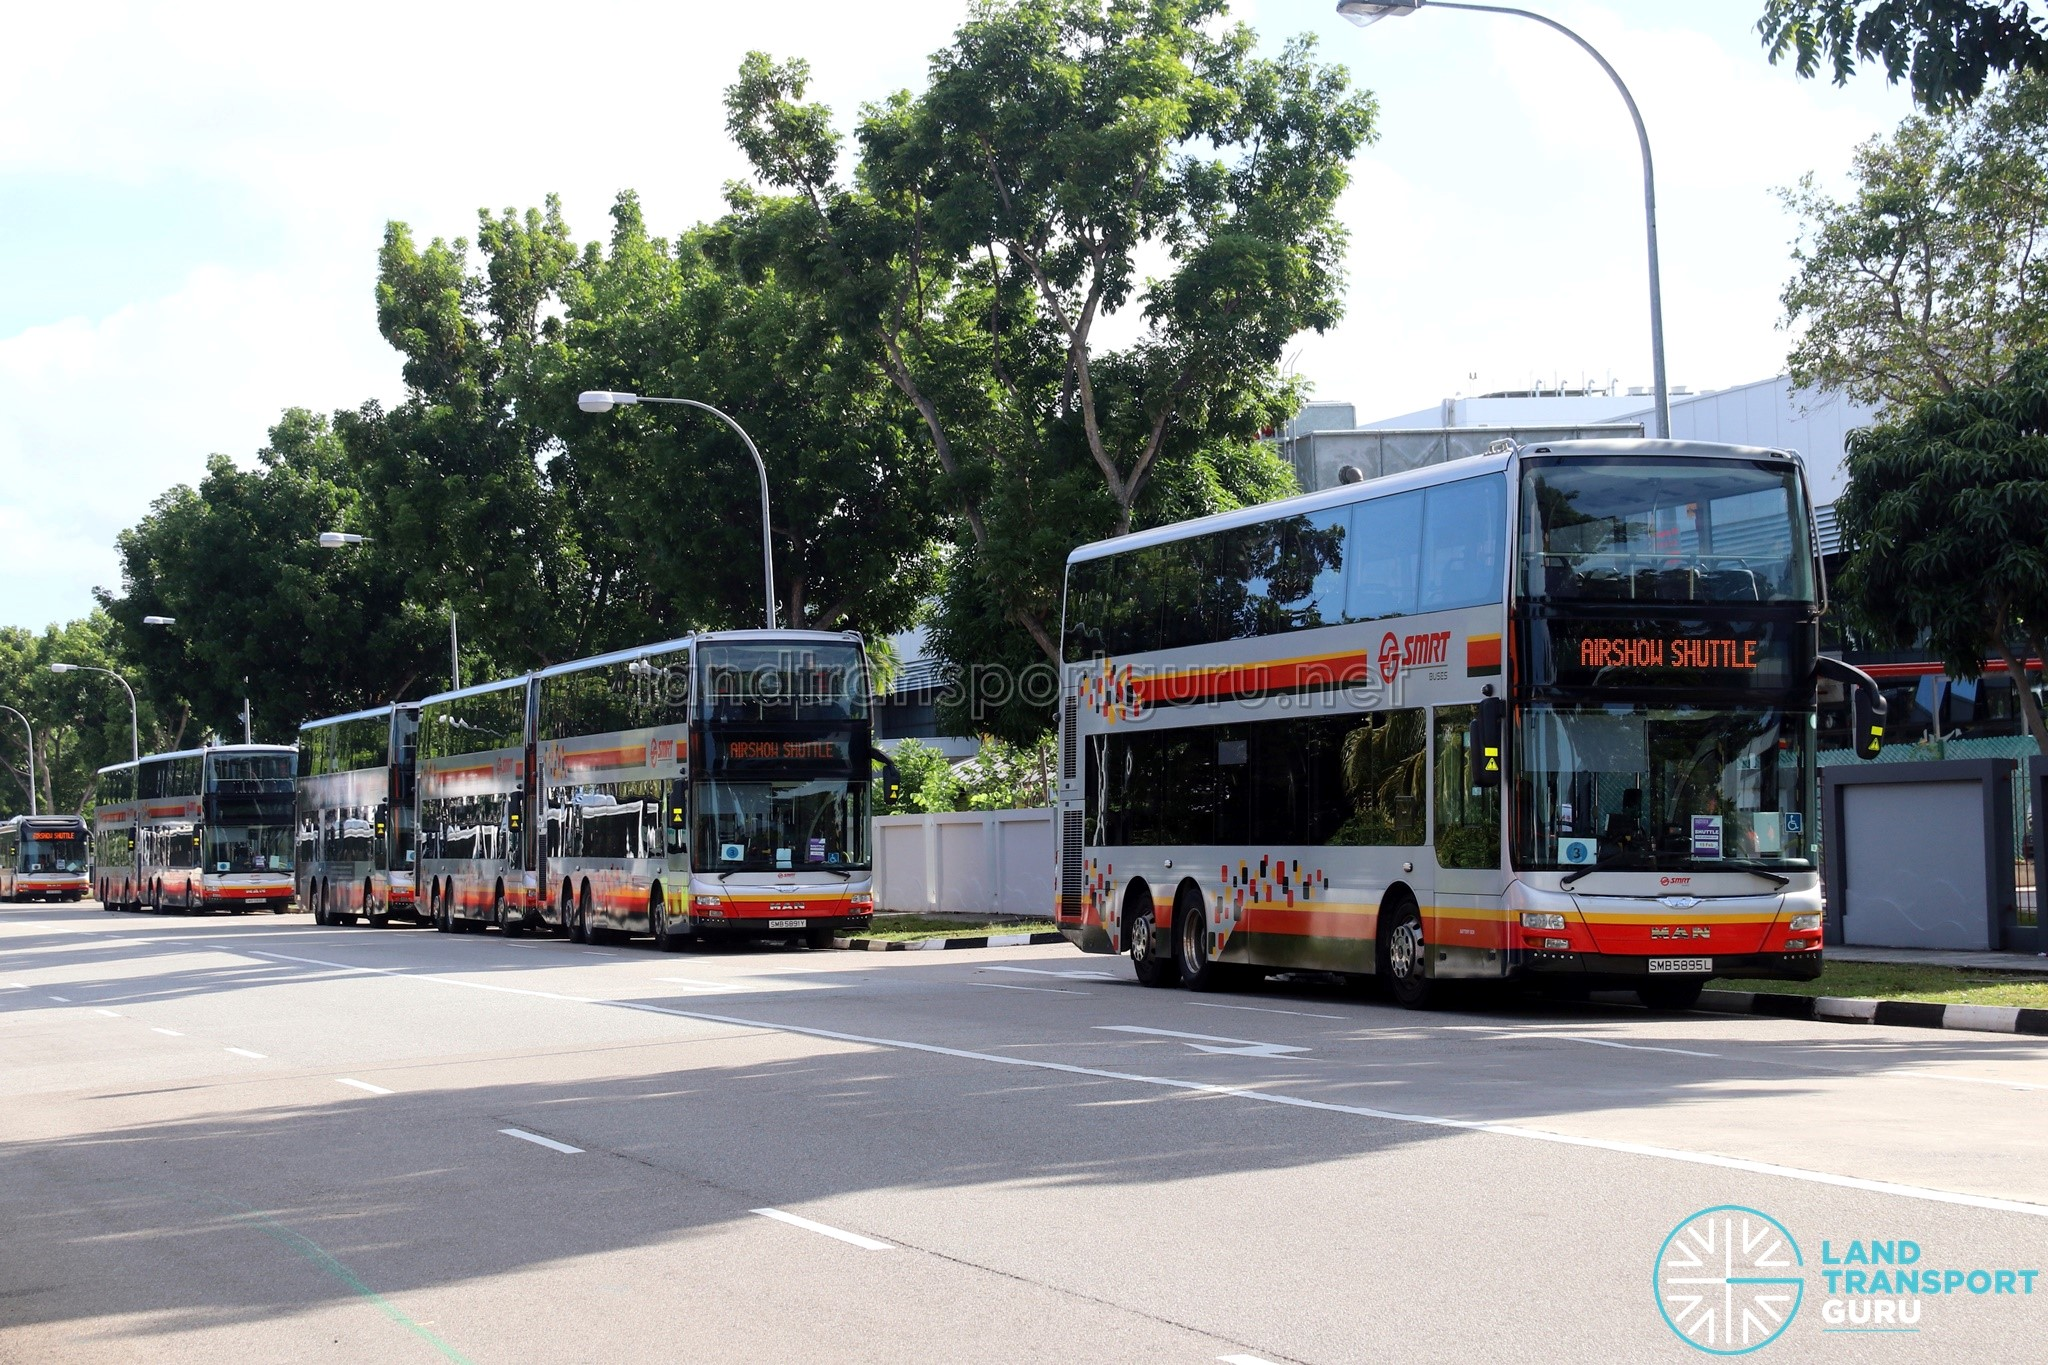 Singapore Airshow 2020 Shuttle Buses